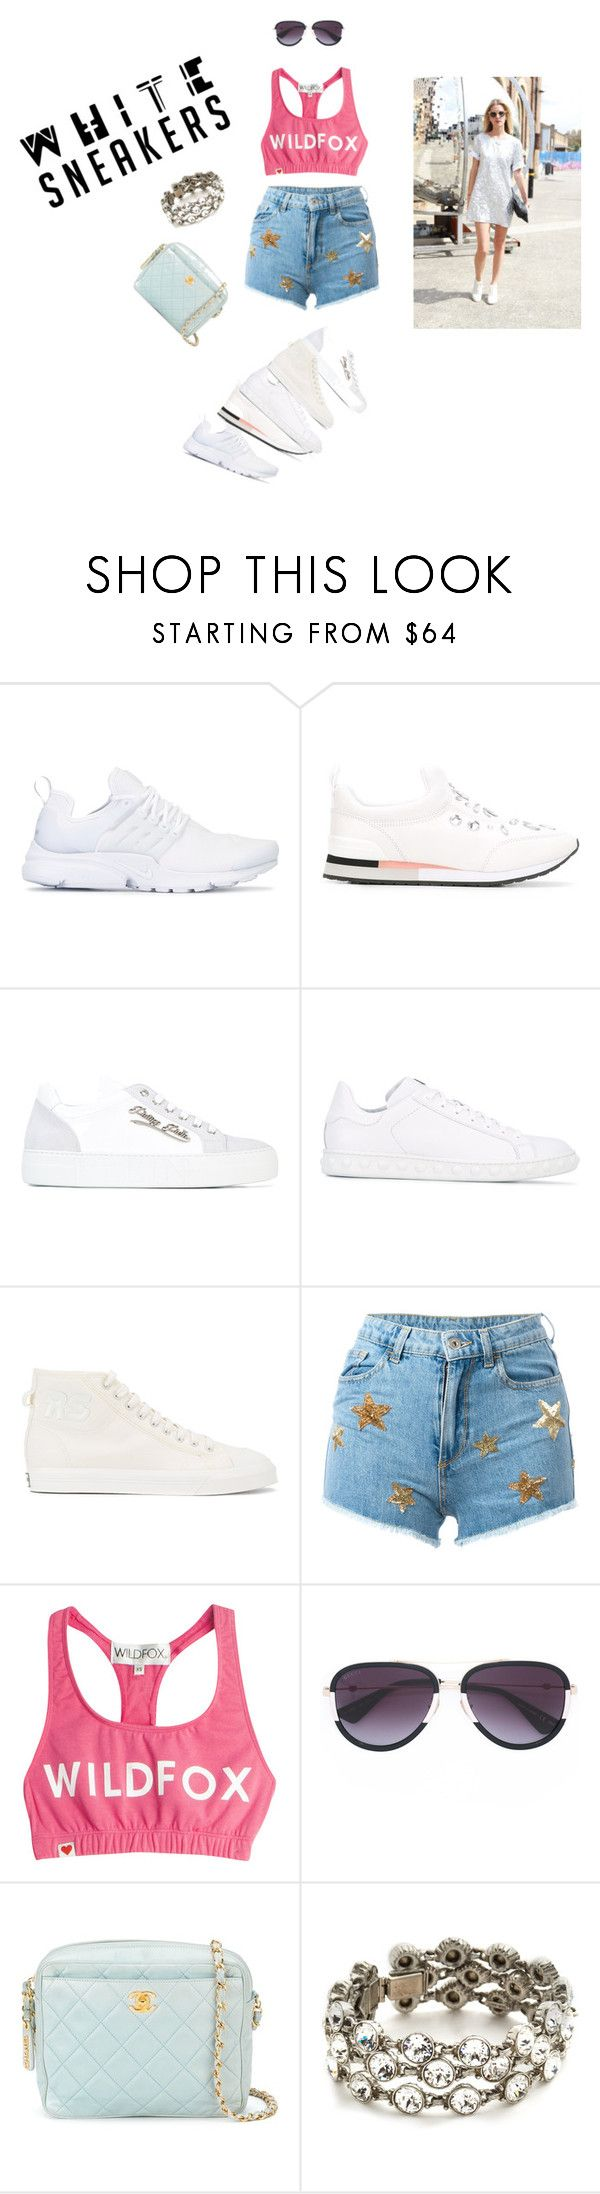 """""""White Sneakers..**"""" by yagna ❤ liked on Polyvore featuring NIKE, Tory Burch, Philipp Plein, Moncler, Raf Simons, Chiara Ferragni, Wildfox, Gucci, Chanel and Ben-Amun"""